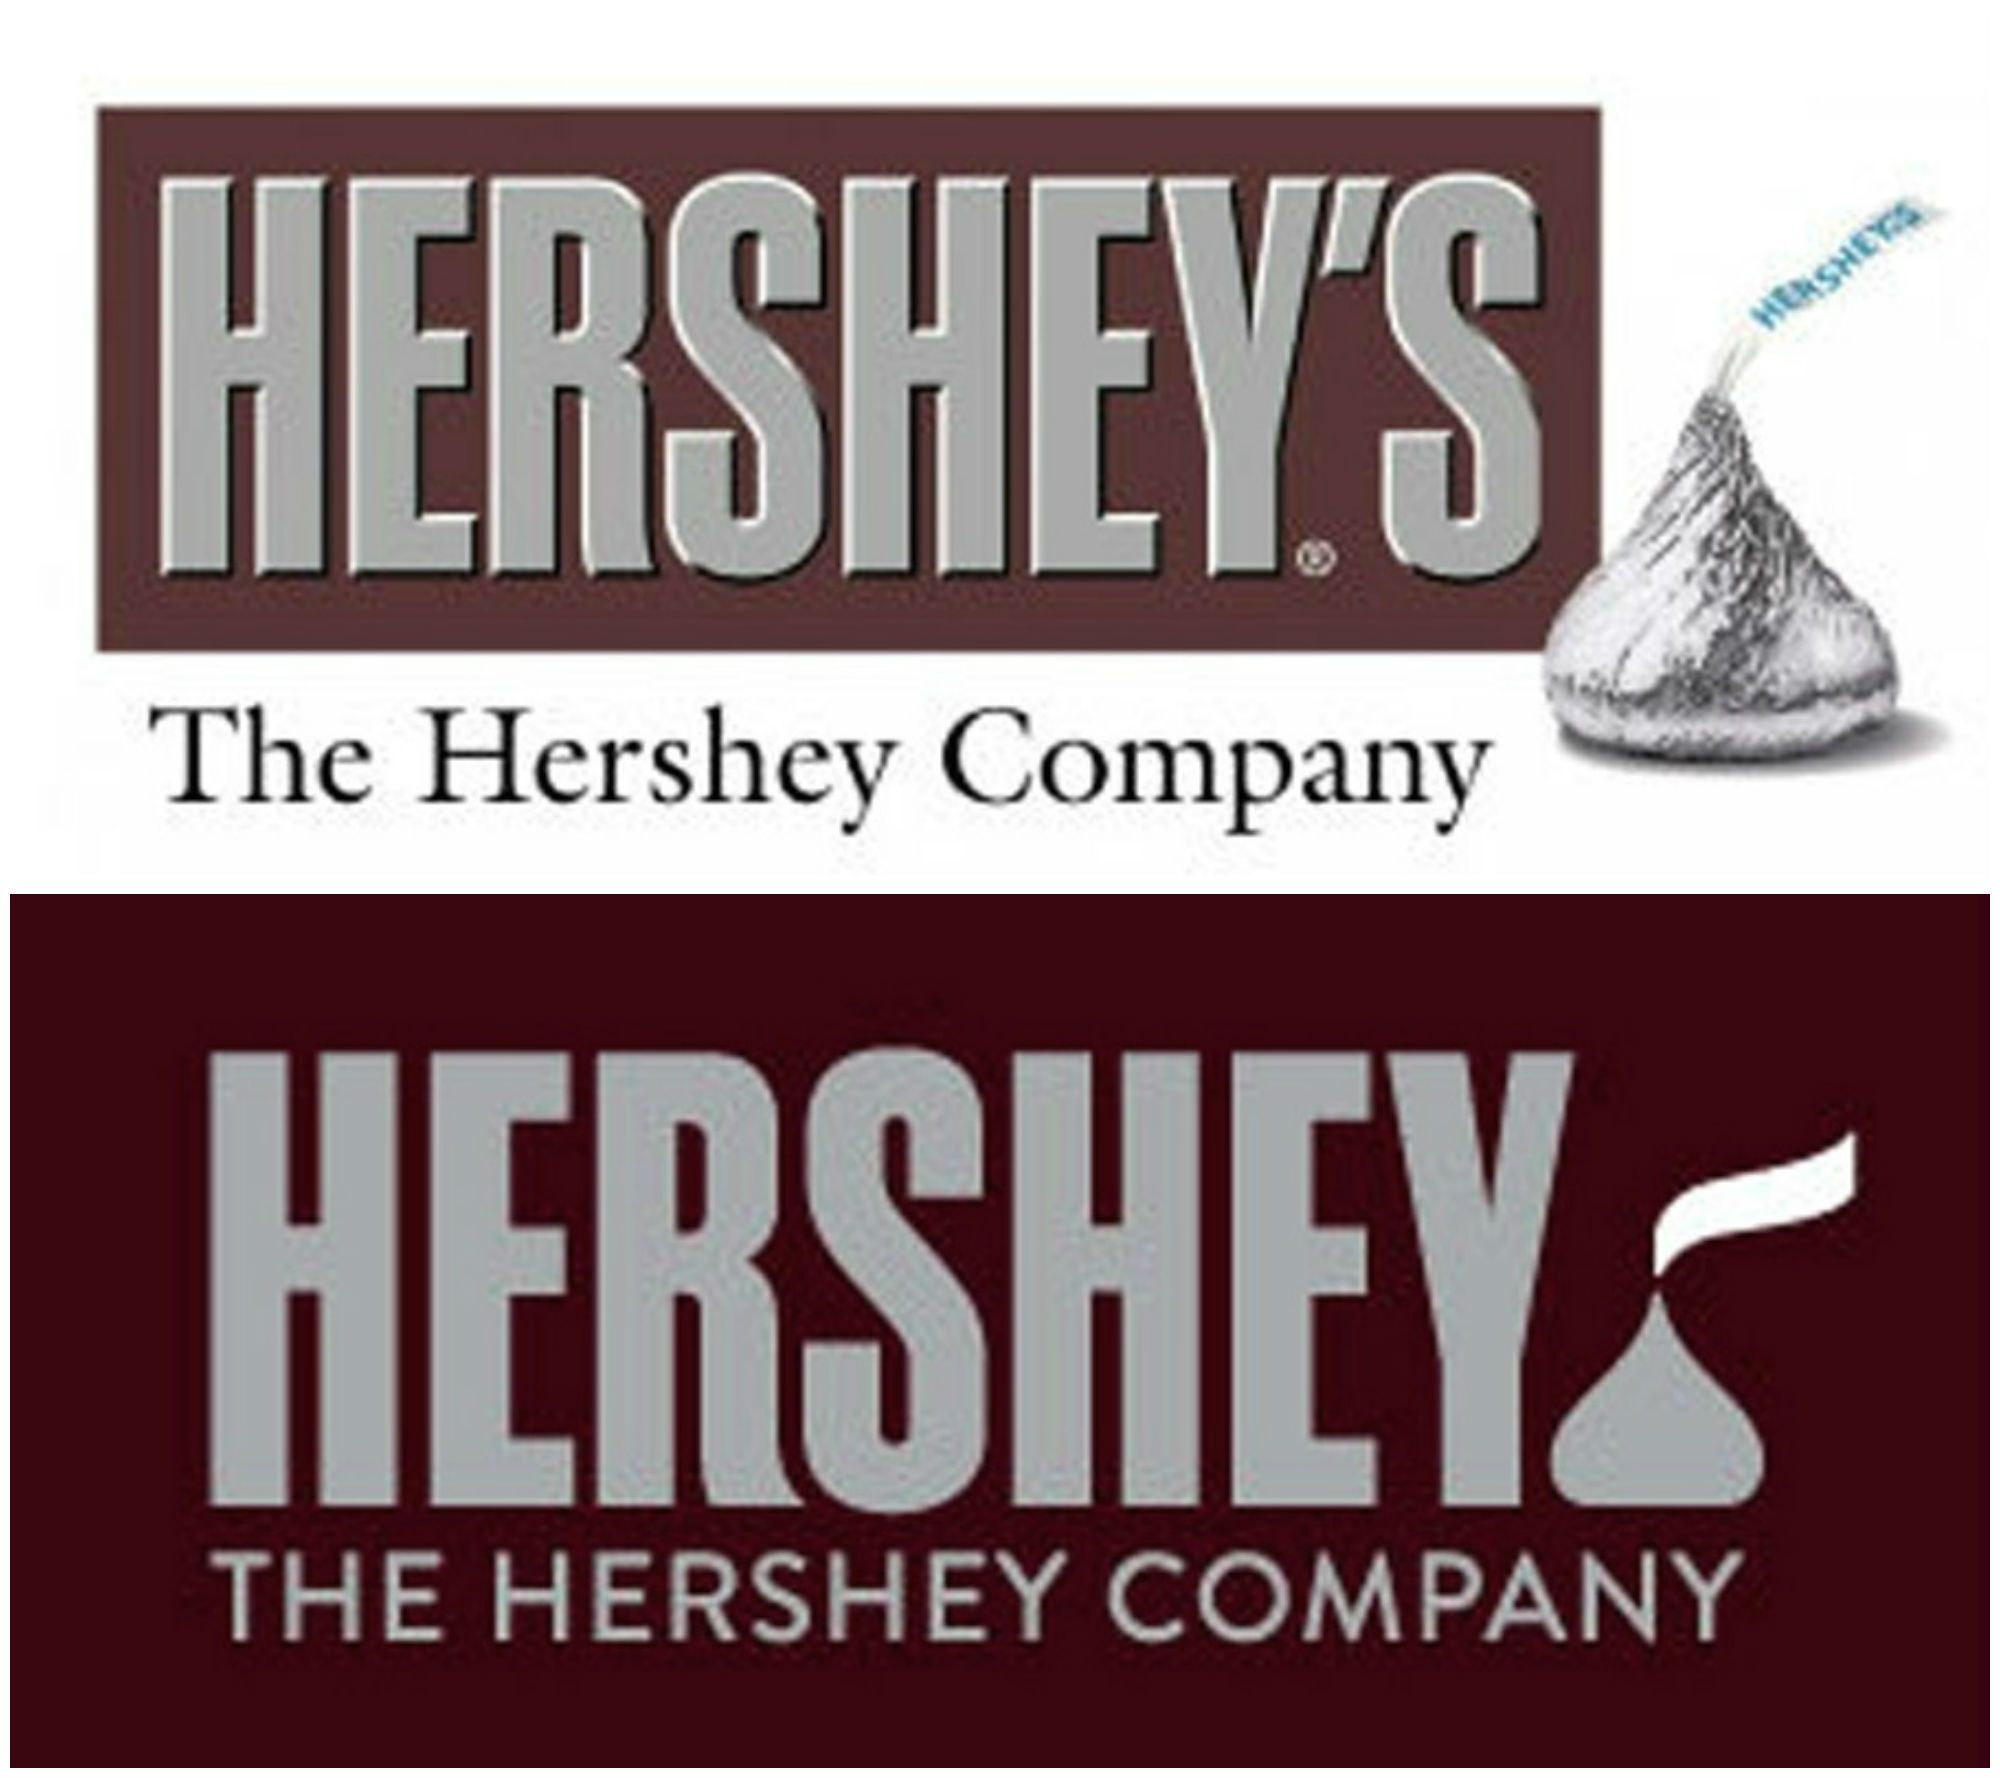 Hershey Logo - Hershey Co. makes changes to its logo | PennLive.com